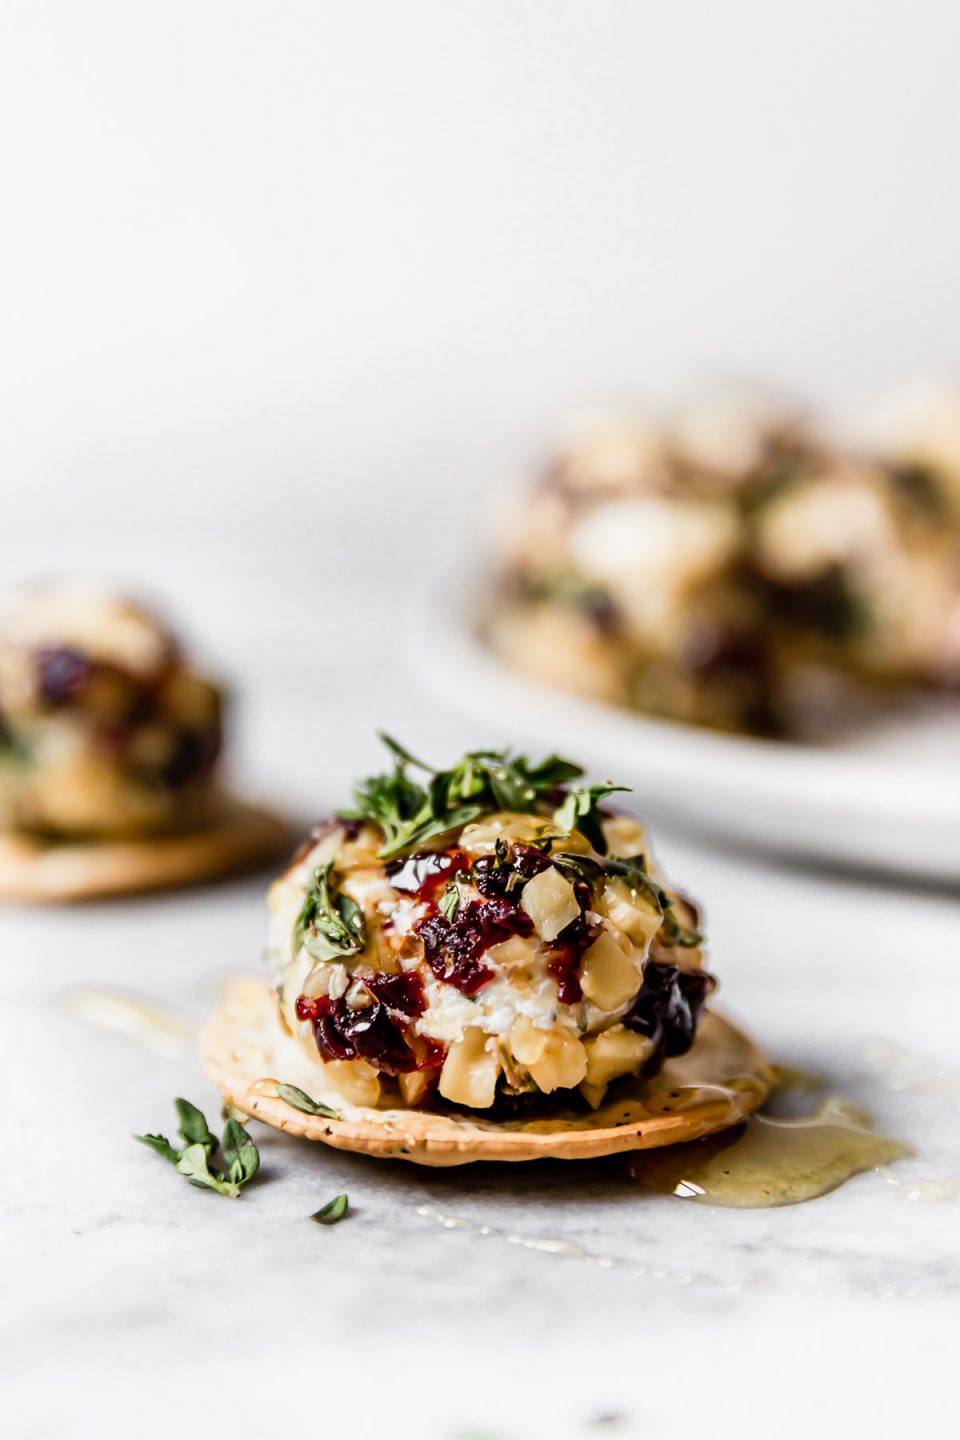 Goat cheese truffle, coated with chopped nuts, tart cherries, & fresh herbs, served on a cracker, topped with honey. There are more goat cheese balls in the background on a small white plate.